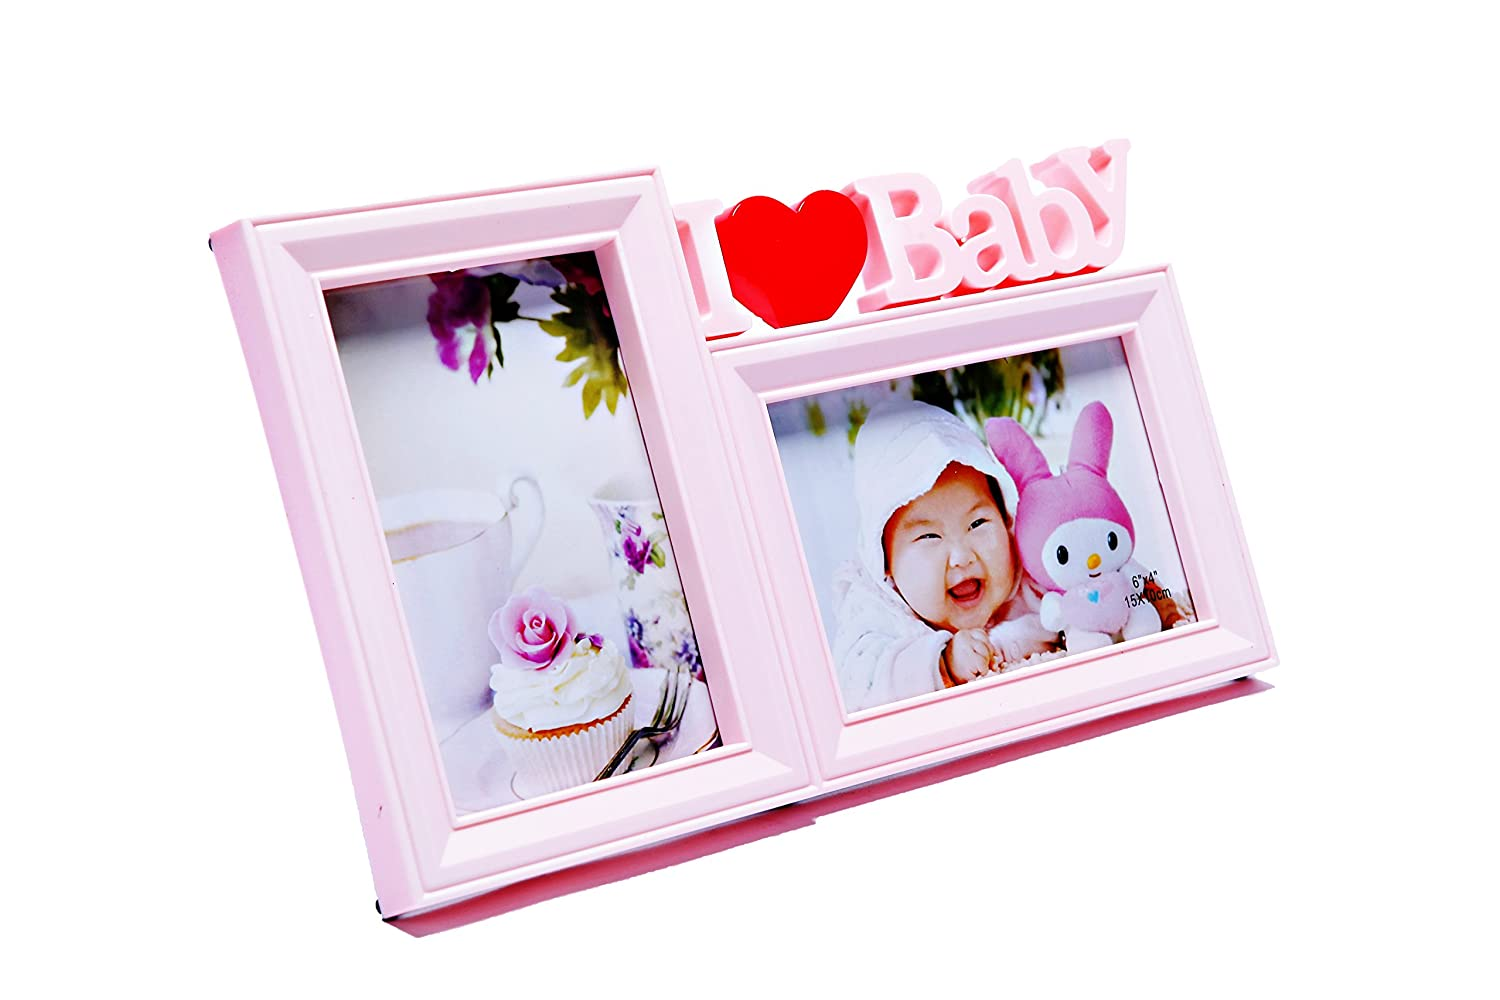 fit Two 4x6 in Size Photos Pink Shower Gift Sweet US Mall Premium Plastic Double Photo Frame,I Love Baby Home Decoration